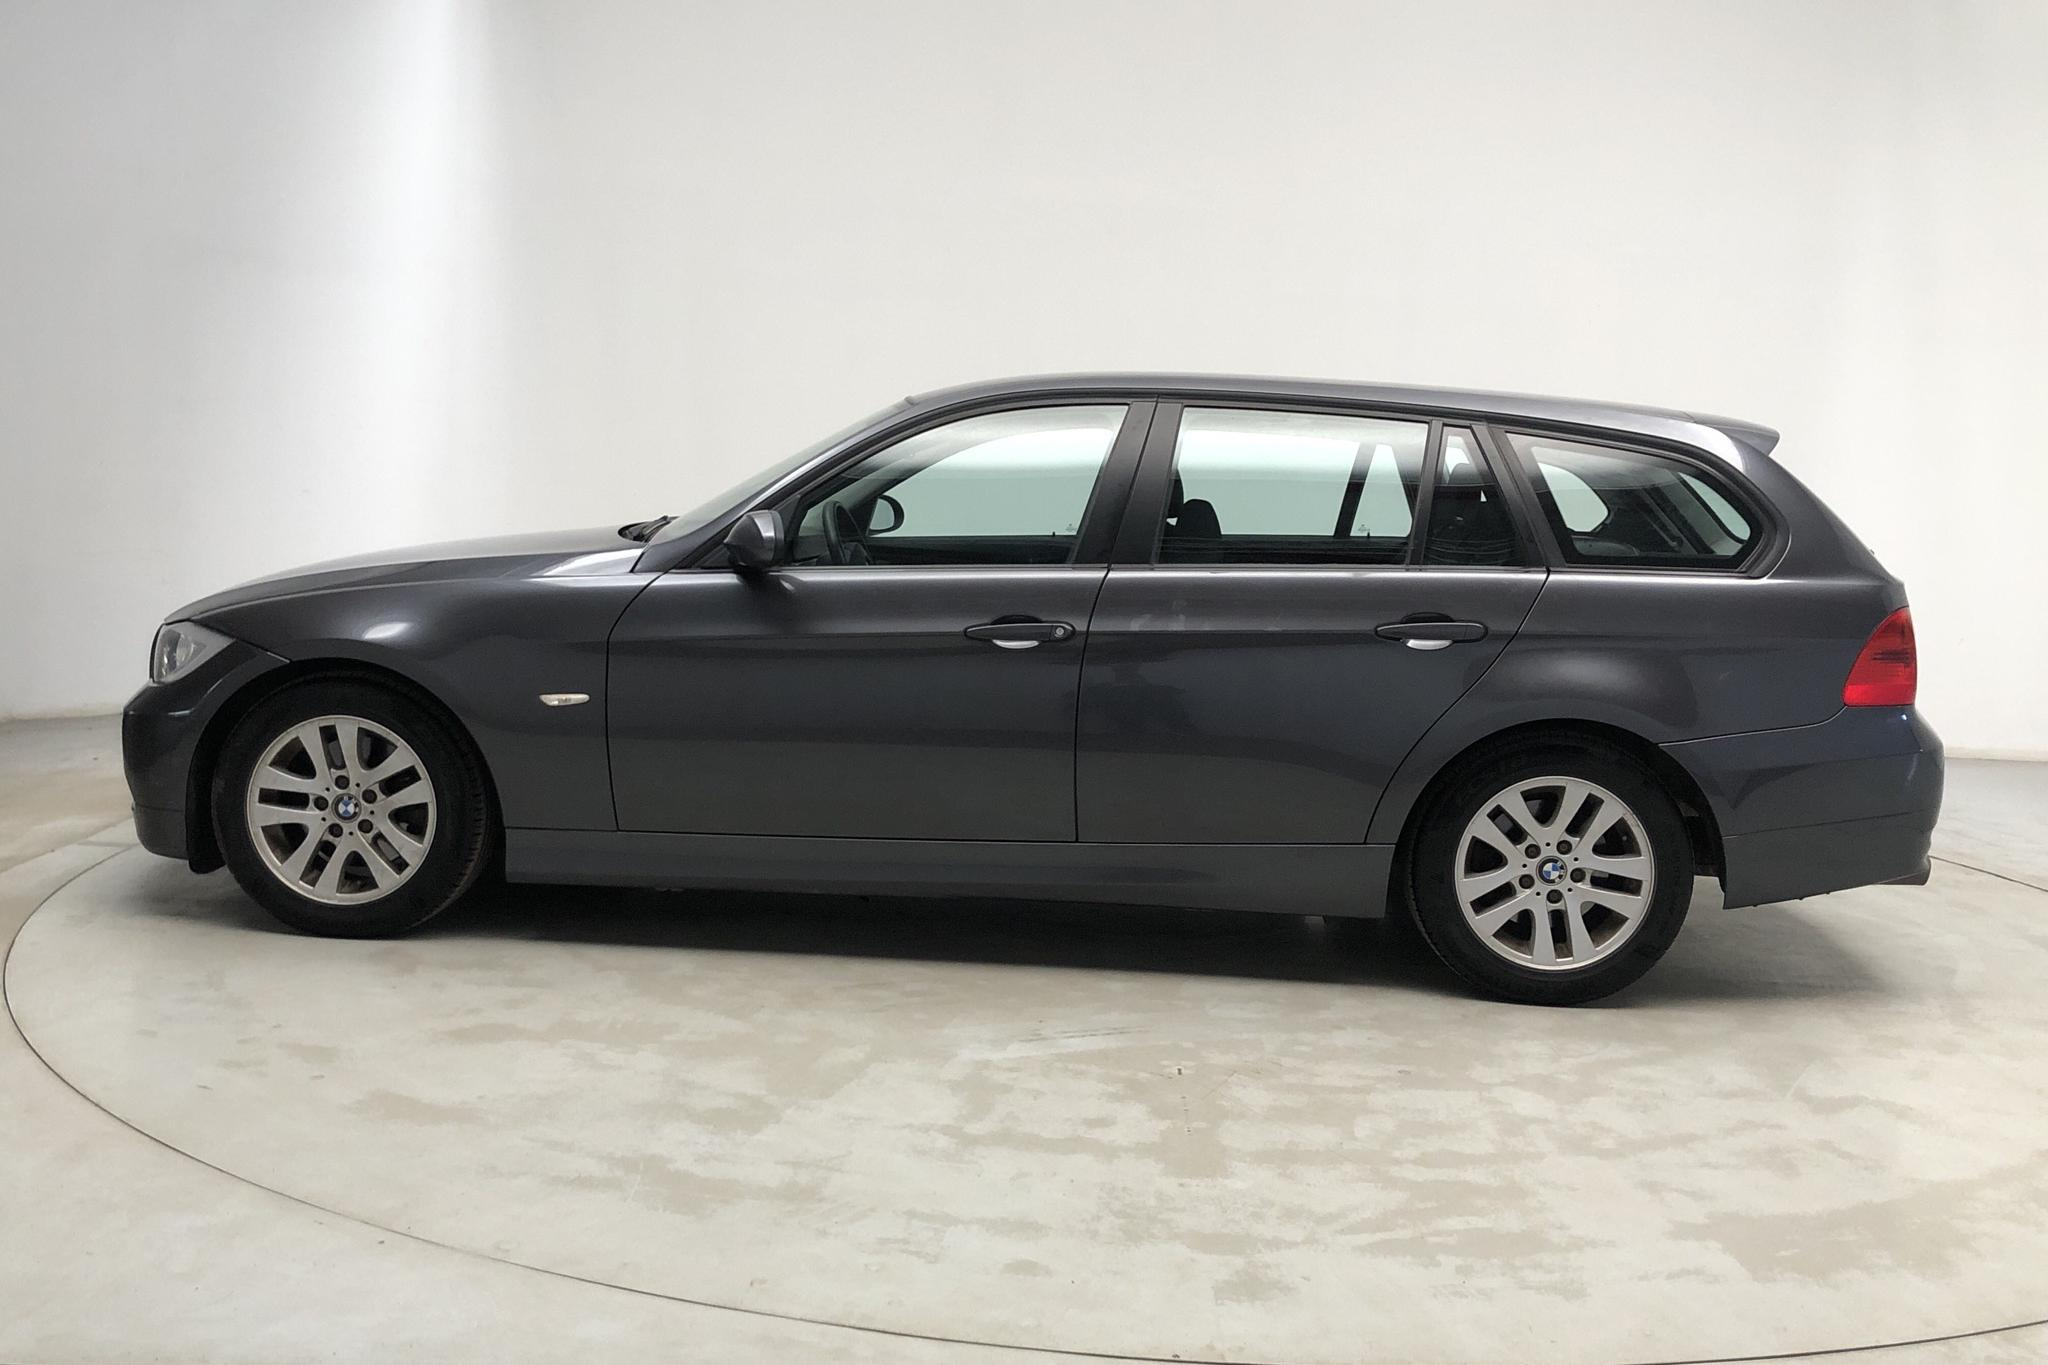 BMW 320d Touring, E91 (177hk) - 189 290 km - Manual - Dark Grey - 2008